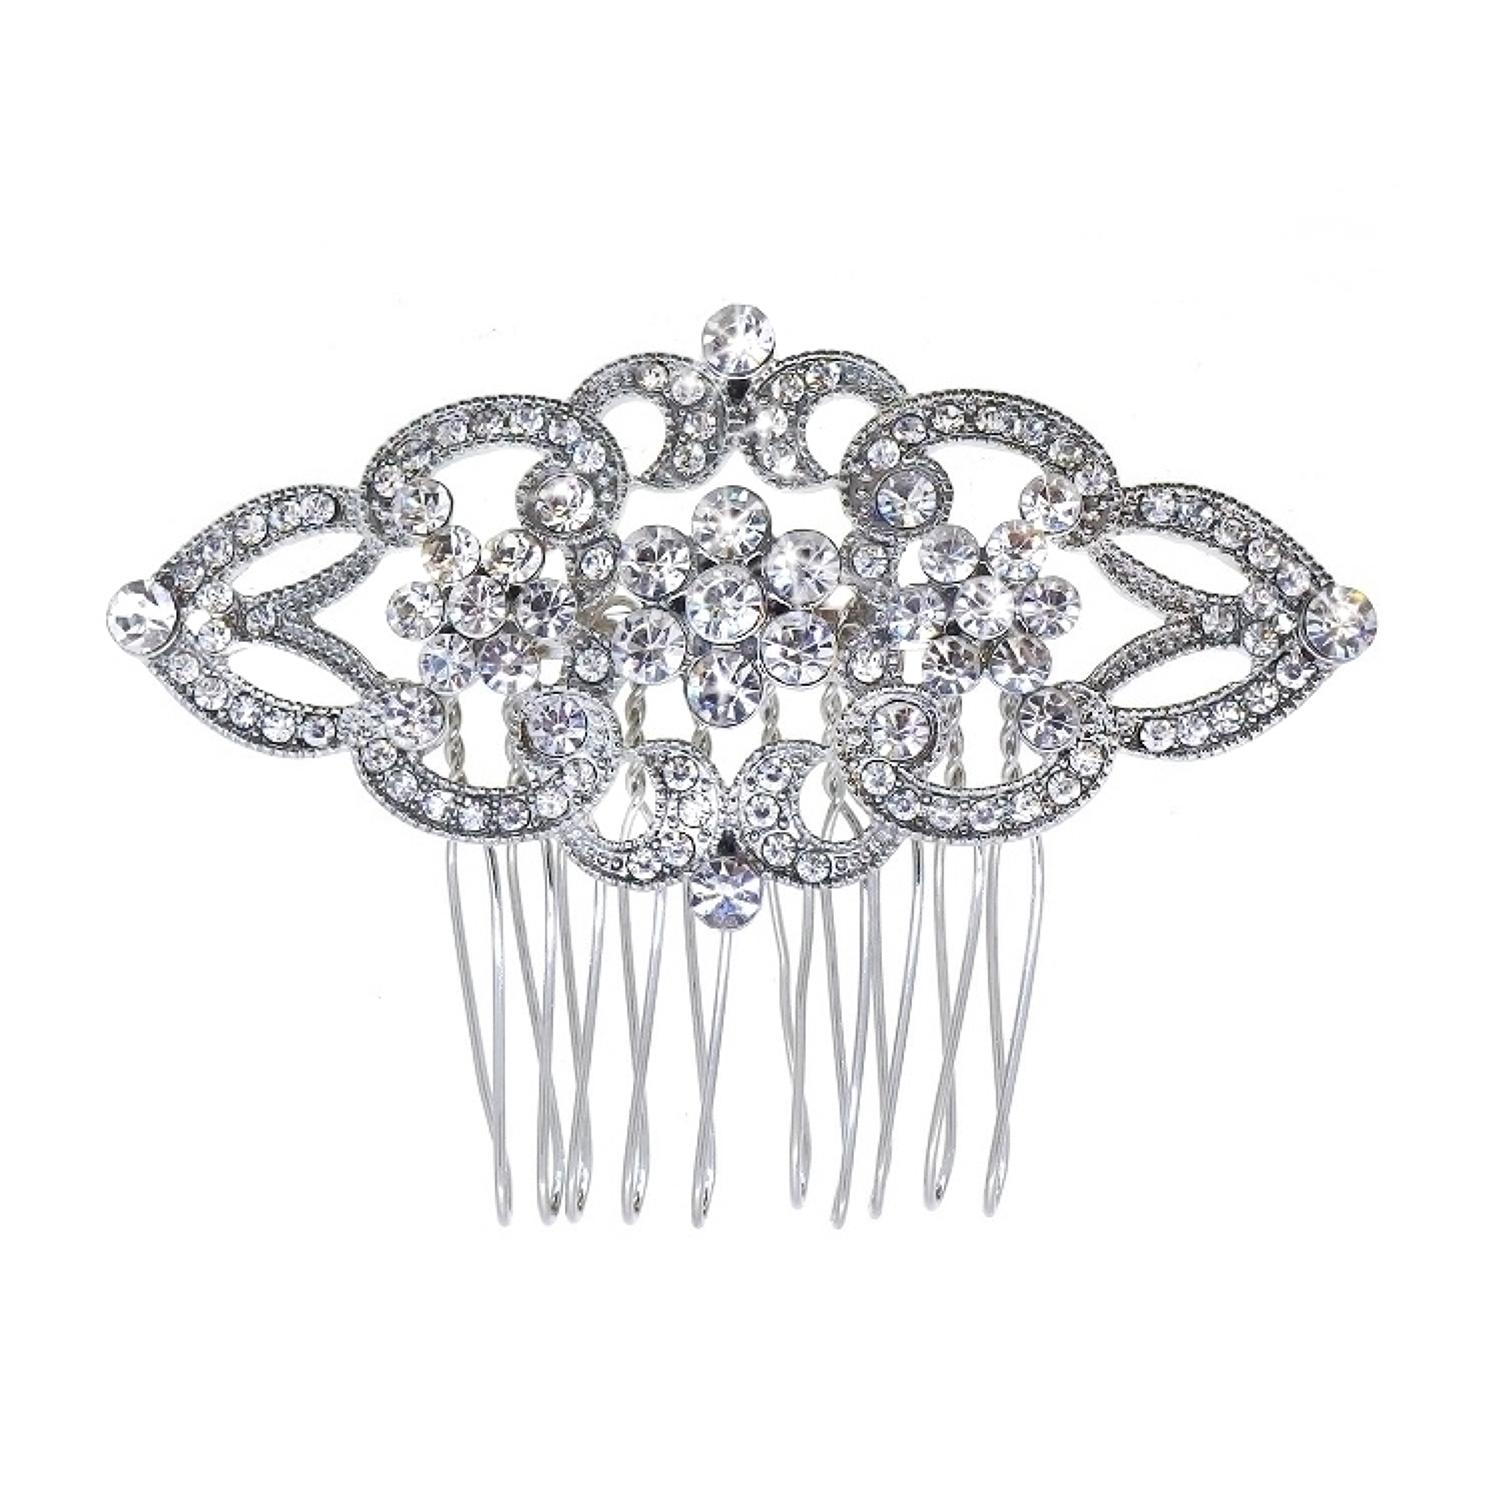 Crystal 3 Flower Design Hair Comb